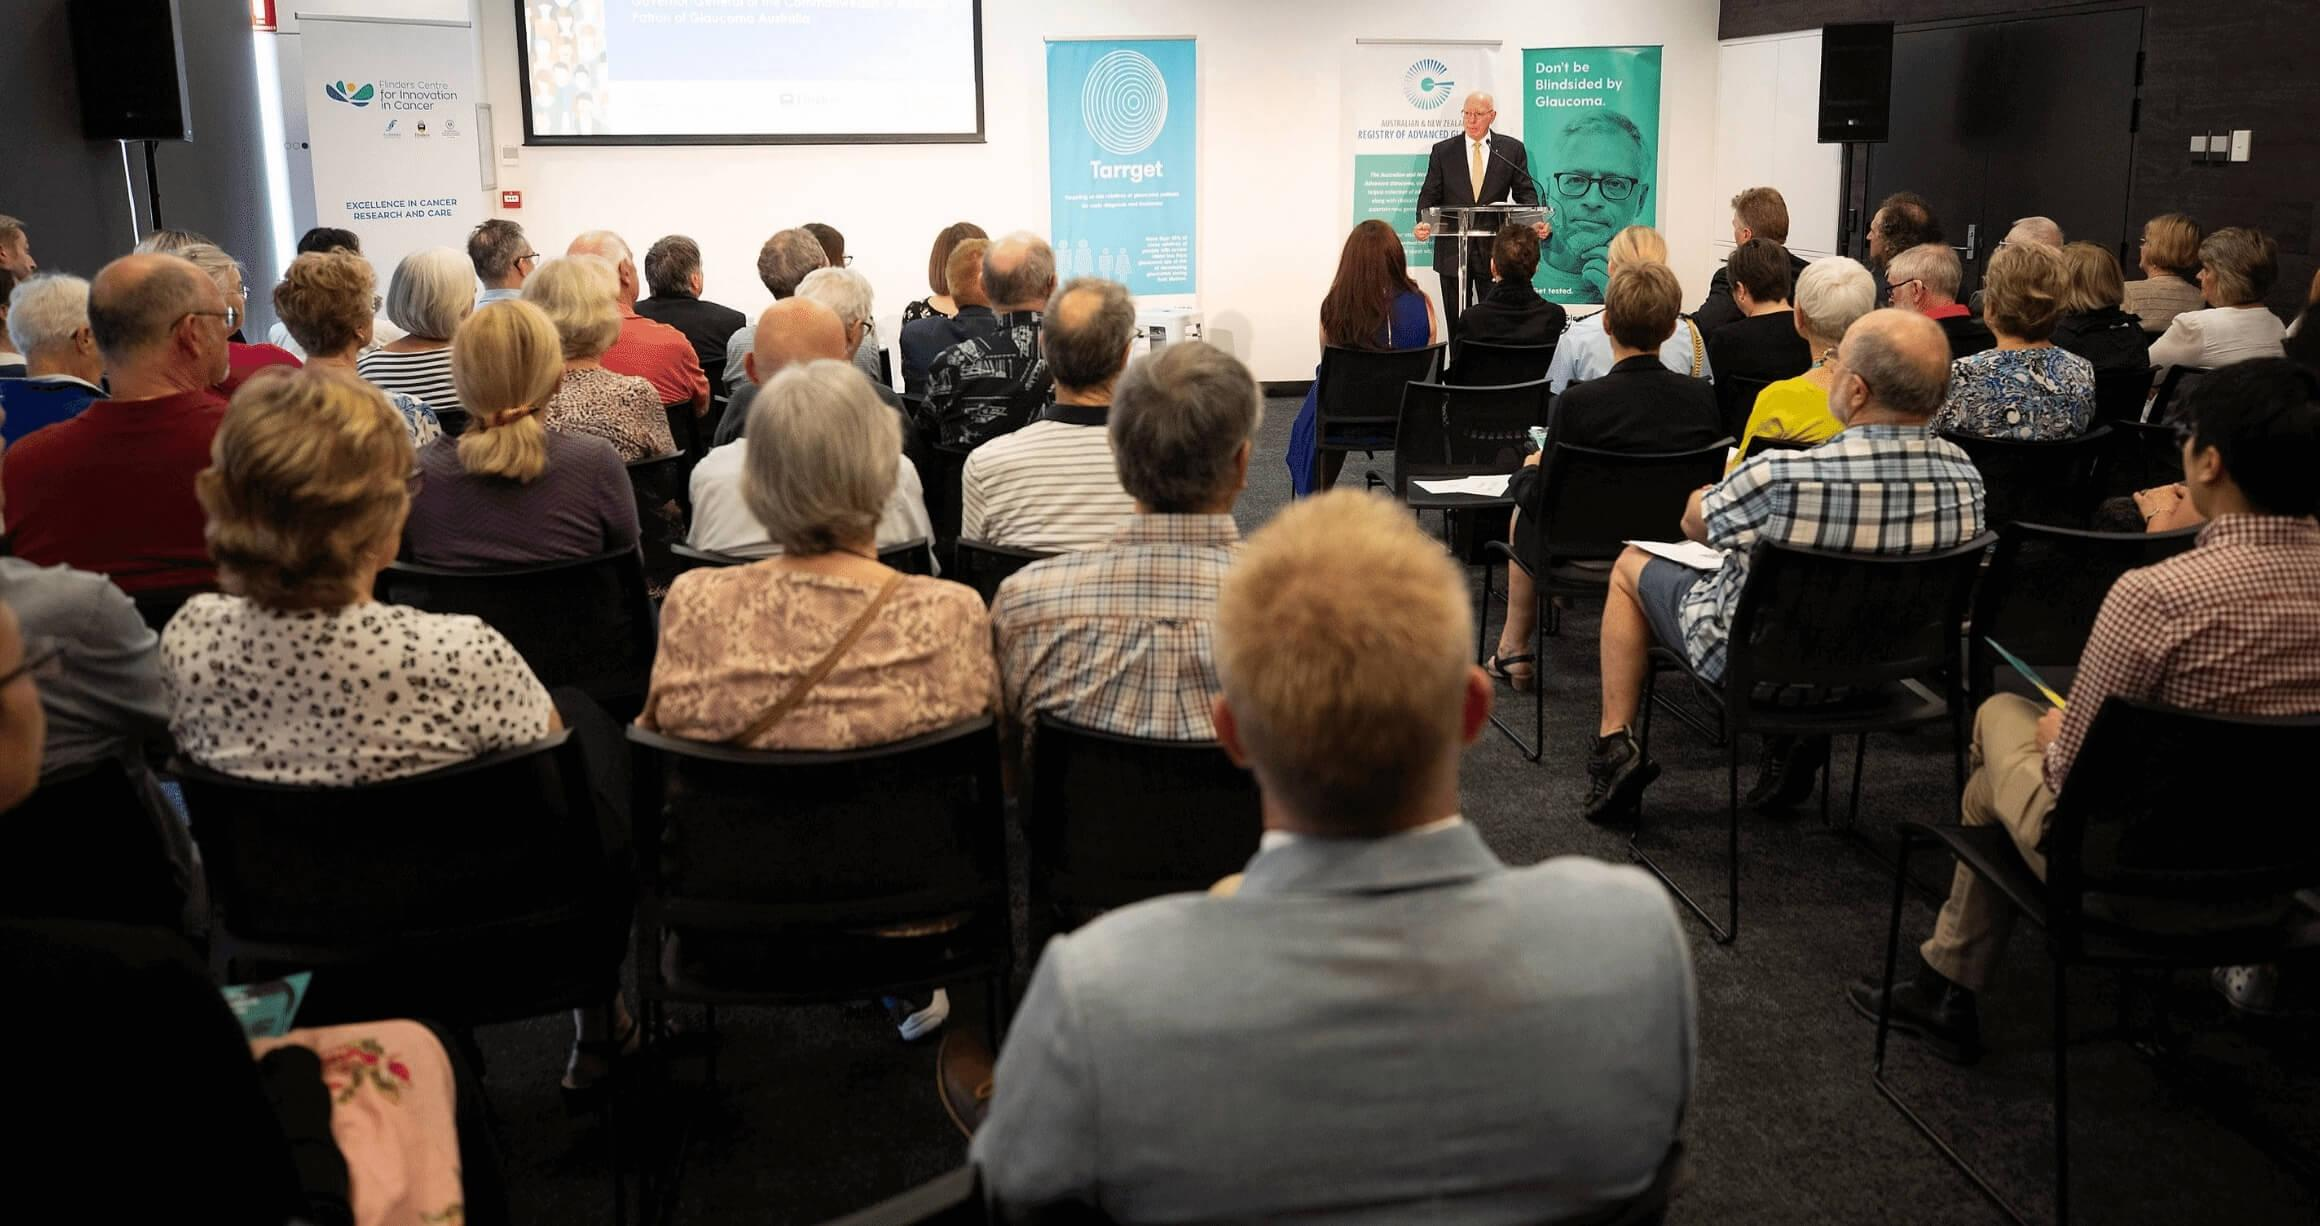 image from rear perspective of audience in a conference room listening to the Governor General of Australia explain the importance of glaucoma awareness